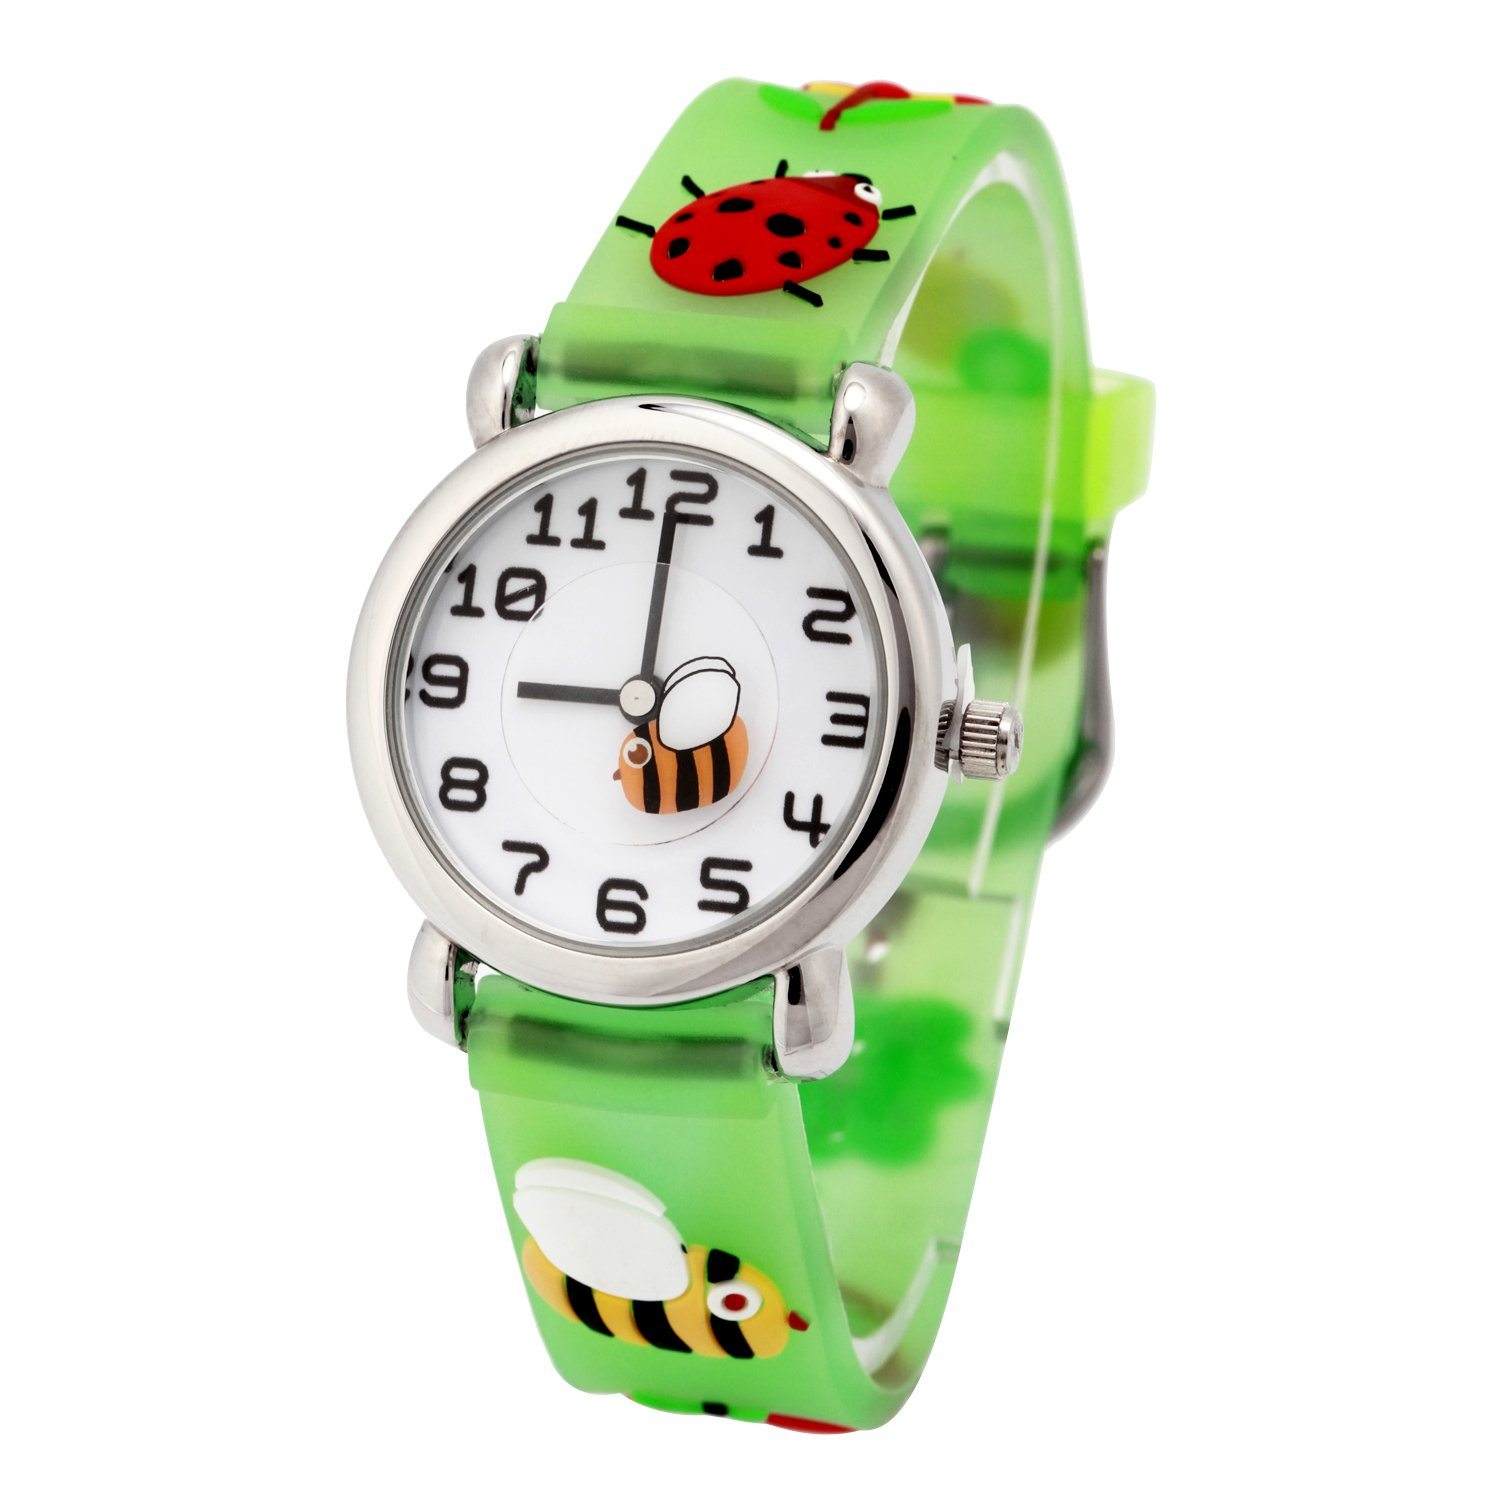 Amazon.com: TOPCHANCES Kids Watches,Childrens 3D Cartoon Quartz Watch with Comfortable Silicone Band Waterproof Toddler Time Teacher for Age 3-10 Boys ...